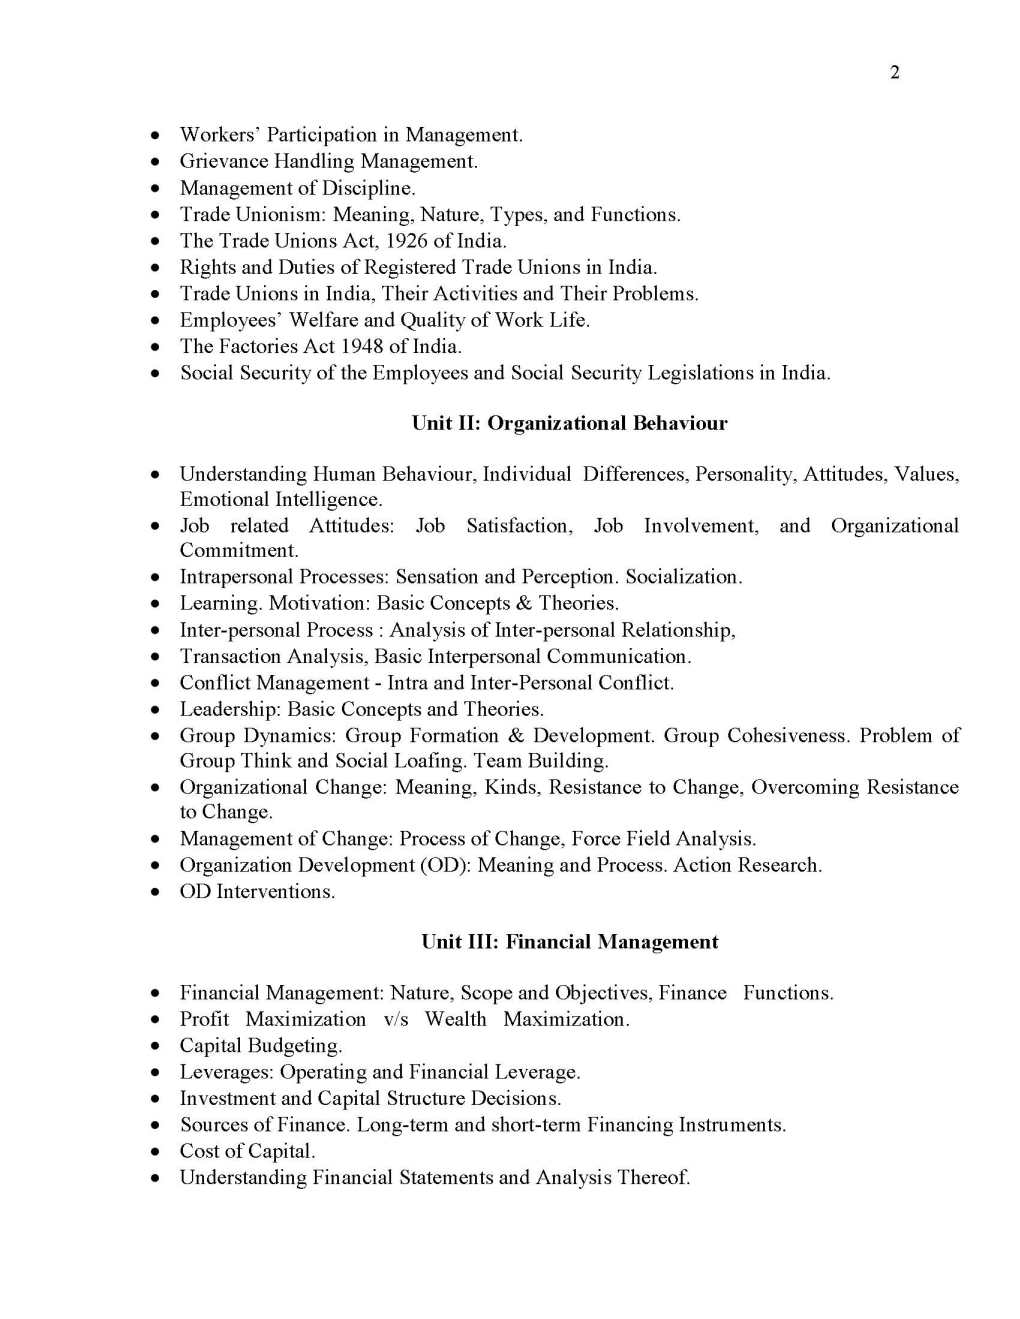 vtu phd coursework syllabus 2011